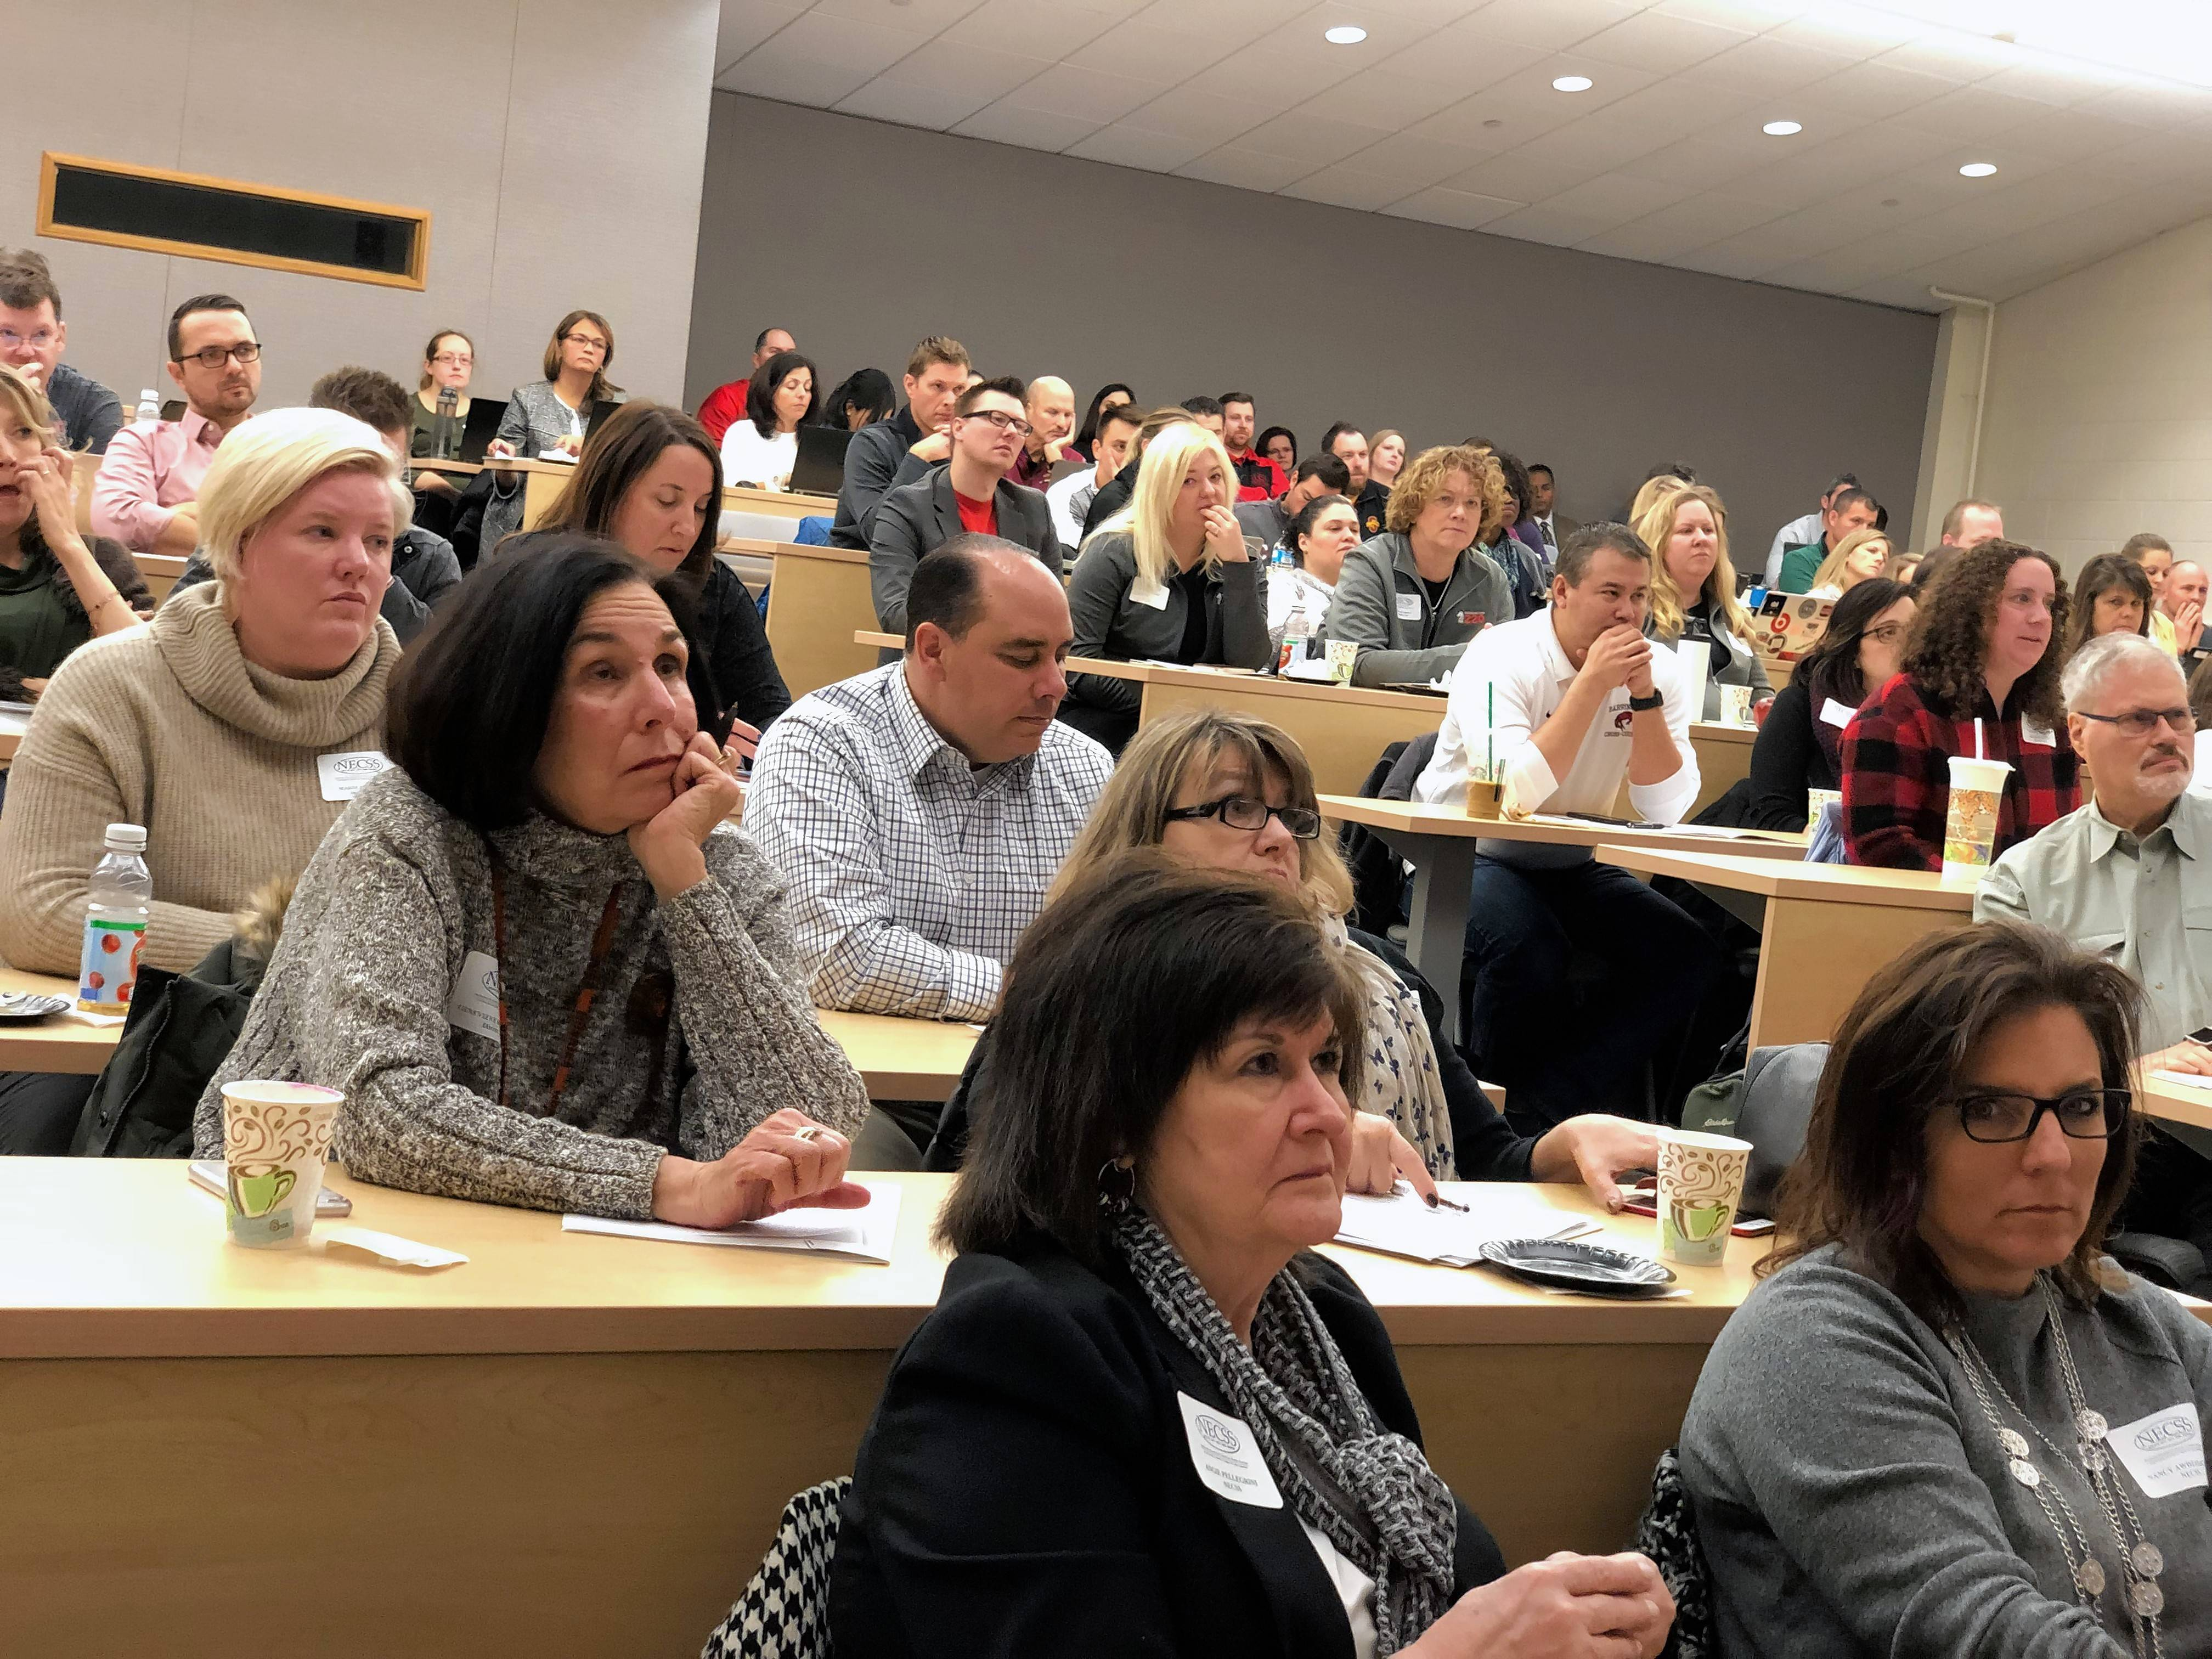 Educators and civic, corporate and nonprofit leaders came together Friday at Harper College in Palatine to discuss the impact of poverty in the suburbs.